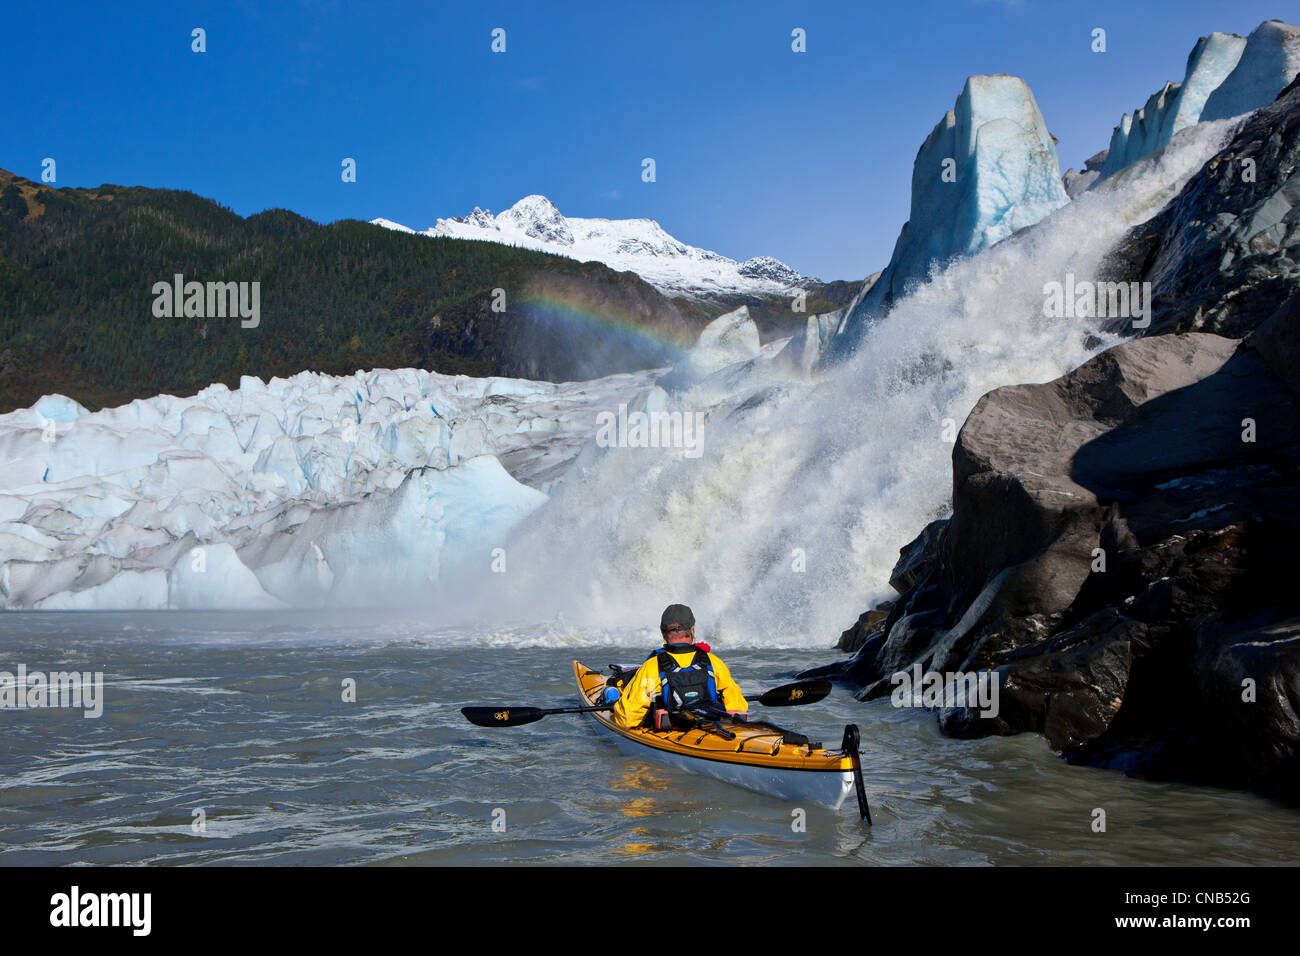 Sea kayaker on Mendenhall Lake with Mendenhall Glacier and Nugget Falls in the background, Southeast Alaska, Summer - Stock Image